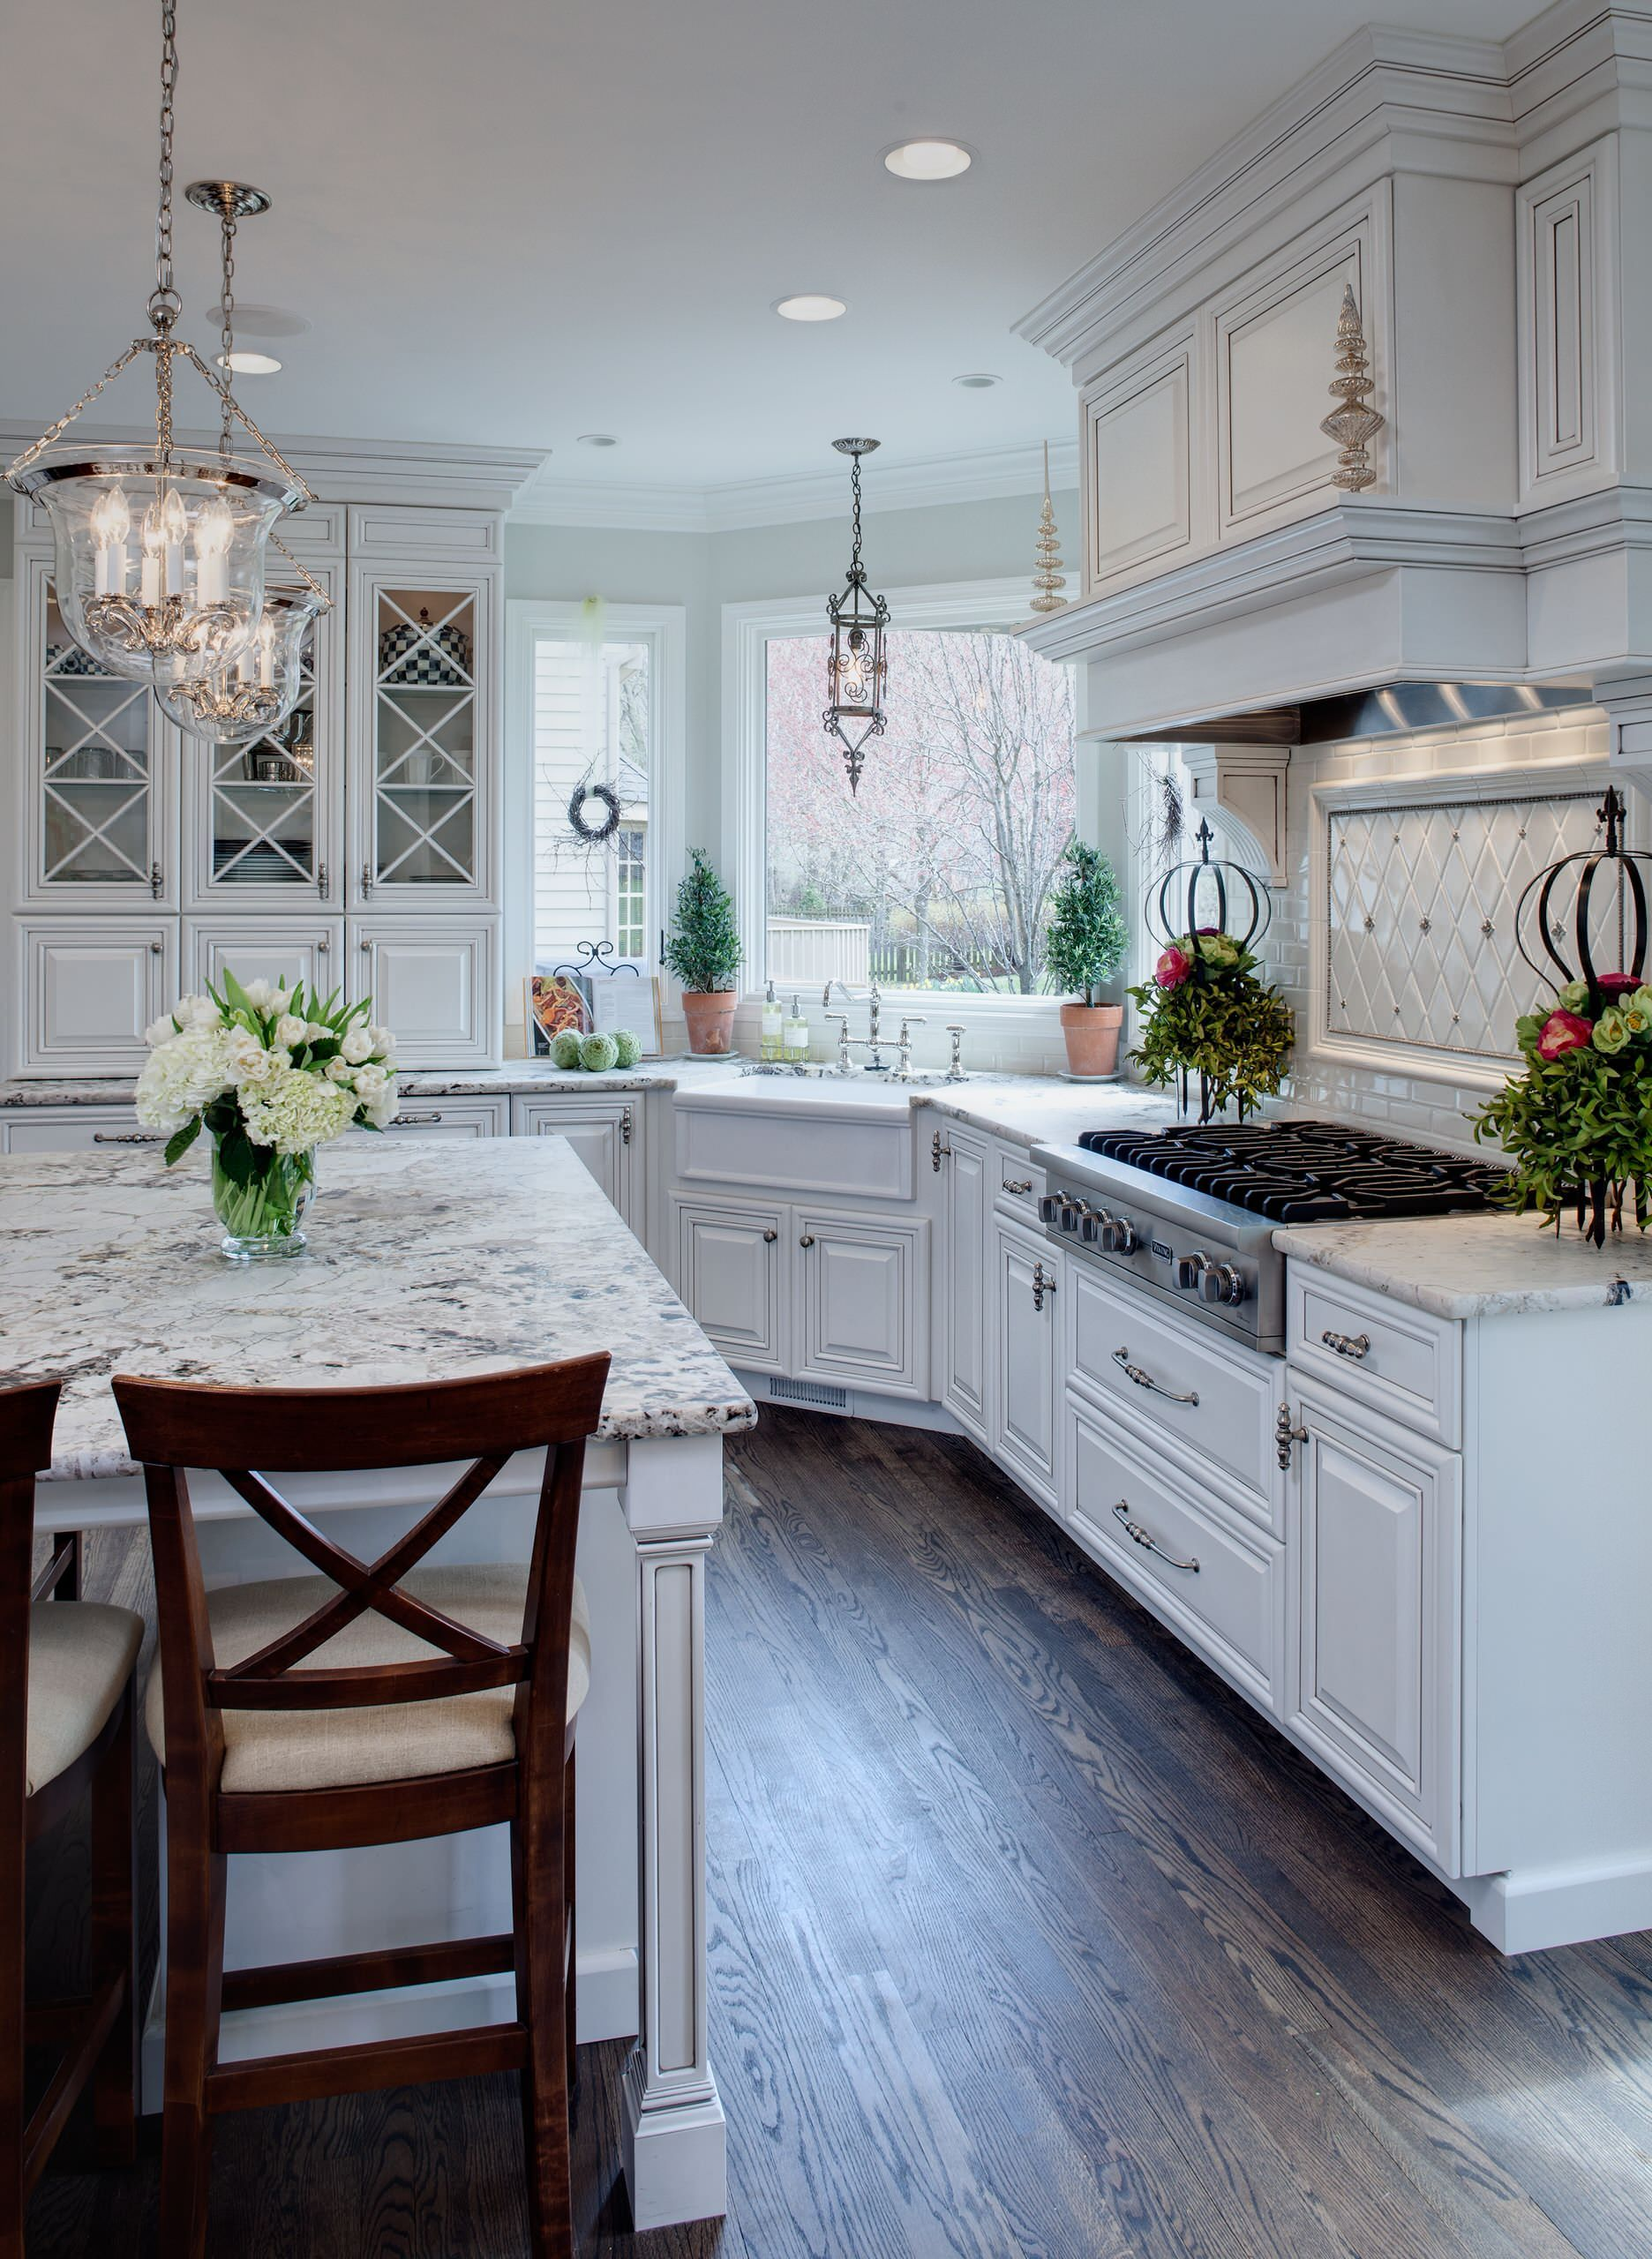 Beautiful Kitchens: 42 Drop-Dead Gorgeous Traditional Kitchen Ideas